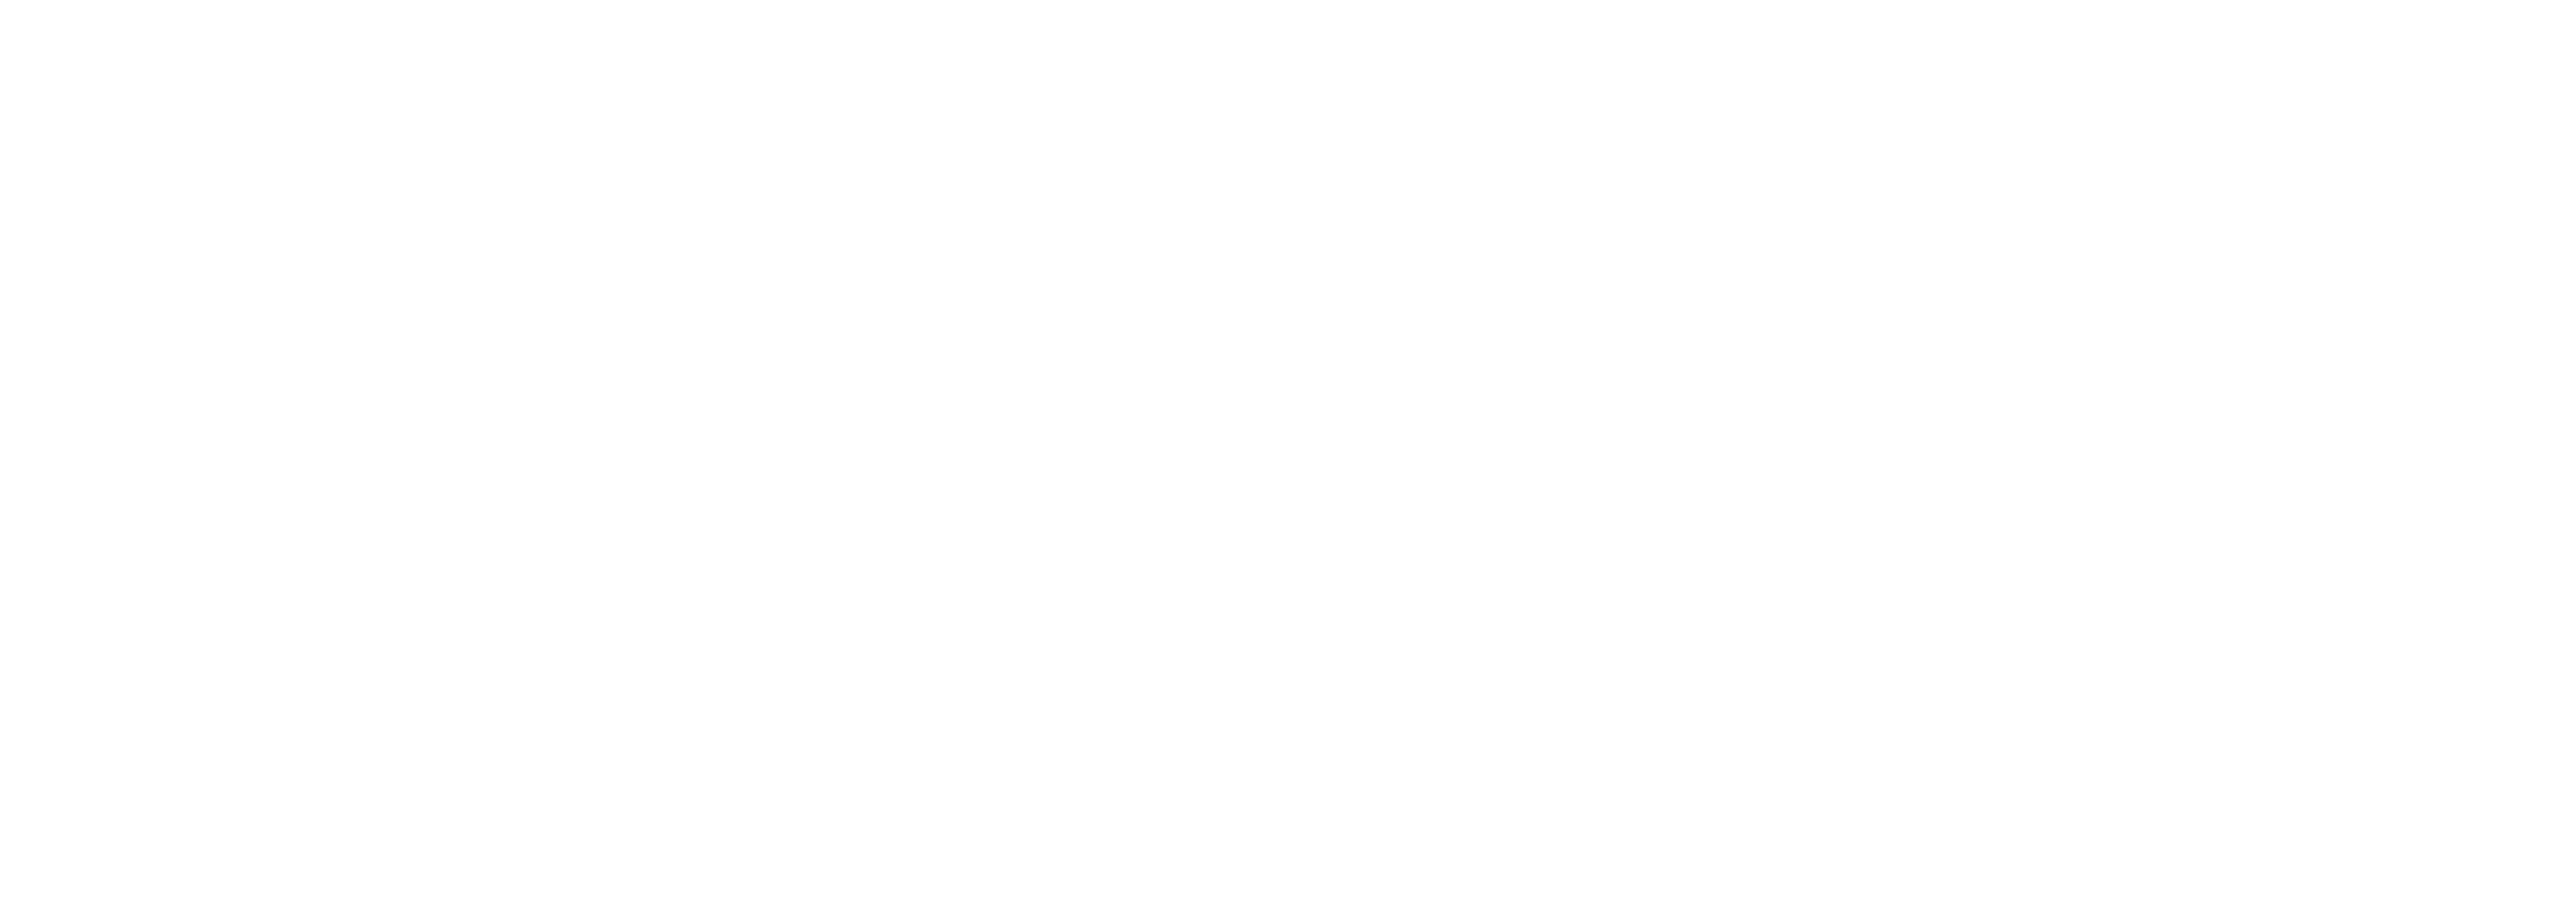 marquis-10-03-20-slider2.png